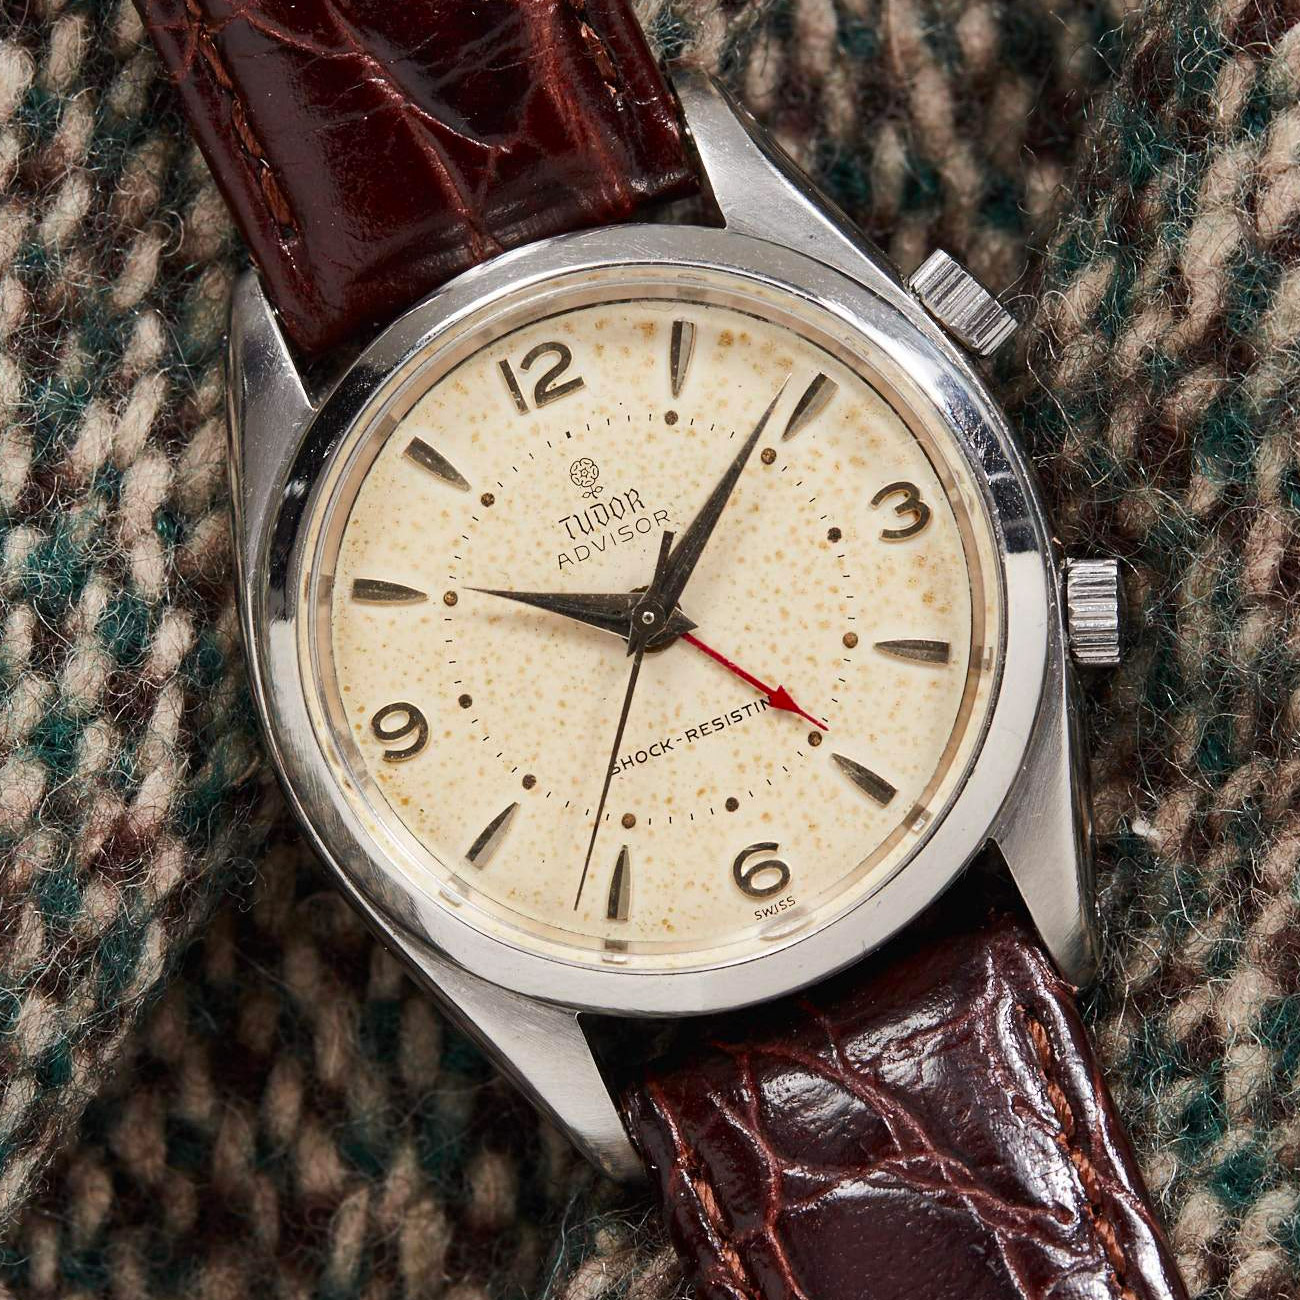 Vintage Tudor Watches >> 3 Different Vintage Tudor Watches Available Now